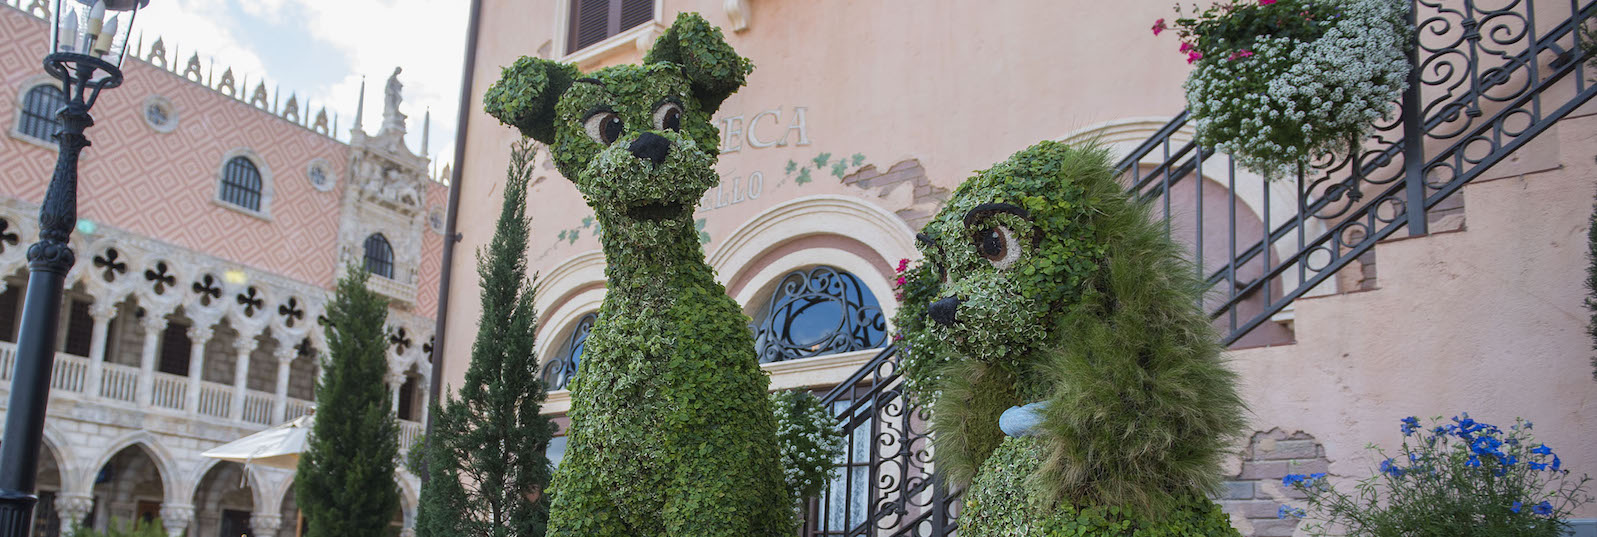 Epcot International Flower & Garden Festival Expands to 90 Days in 2016